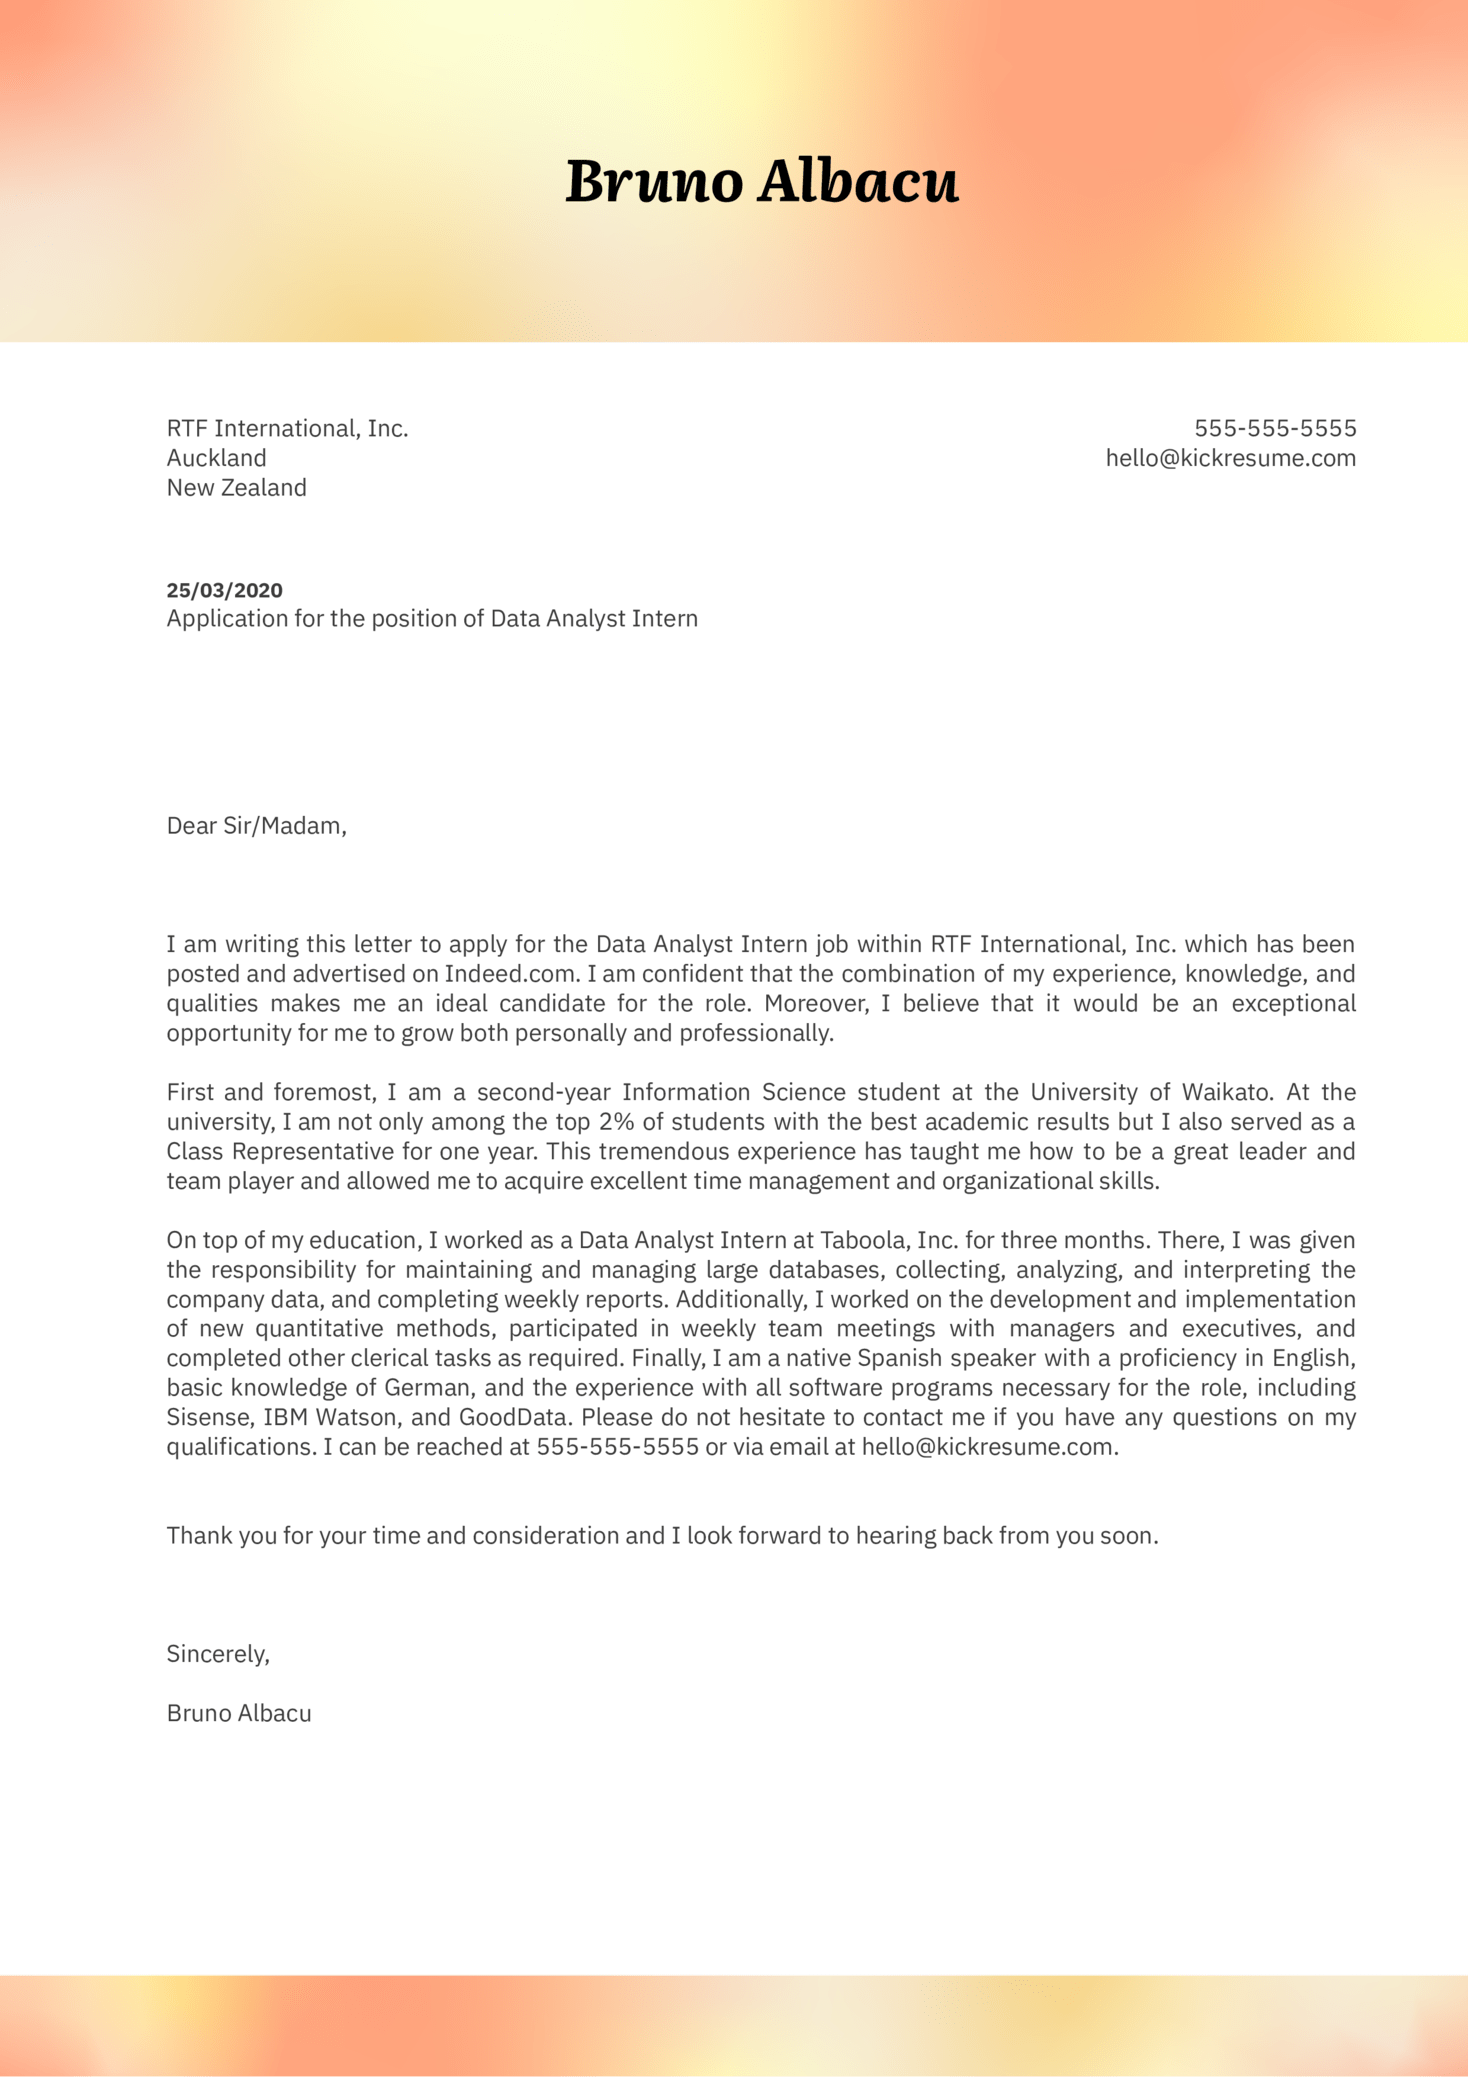 data analyst intern cover letter example